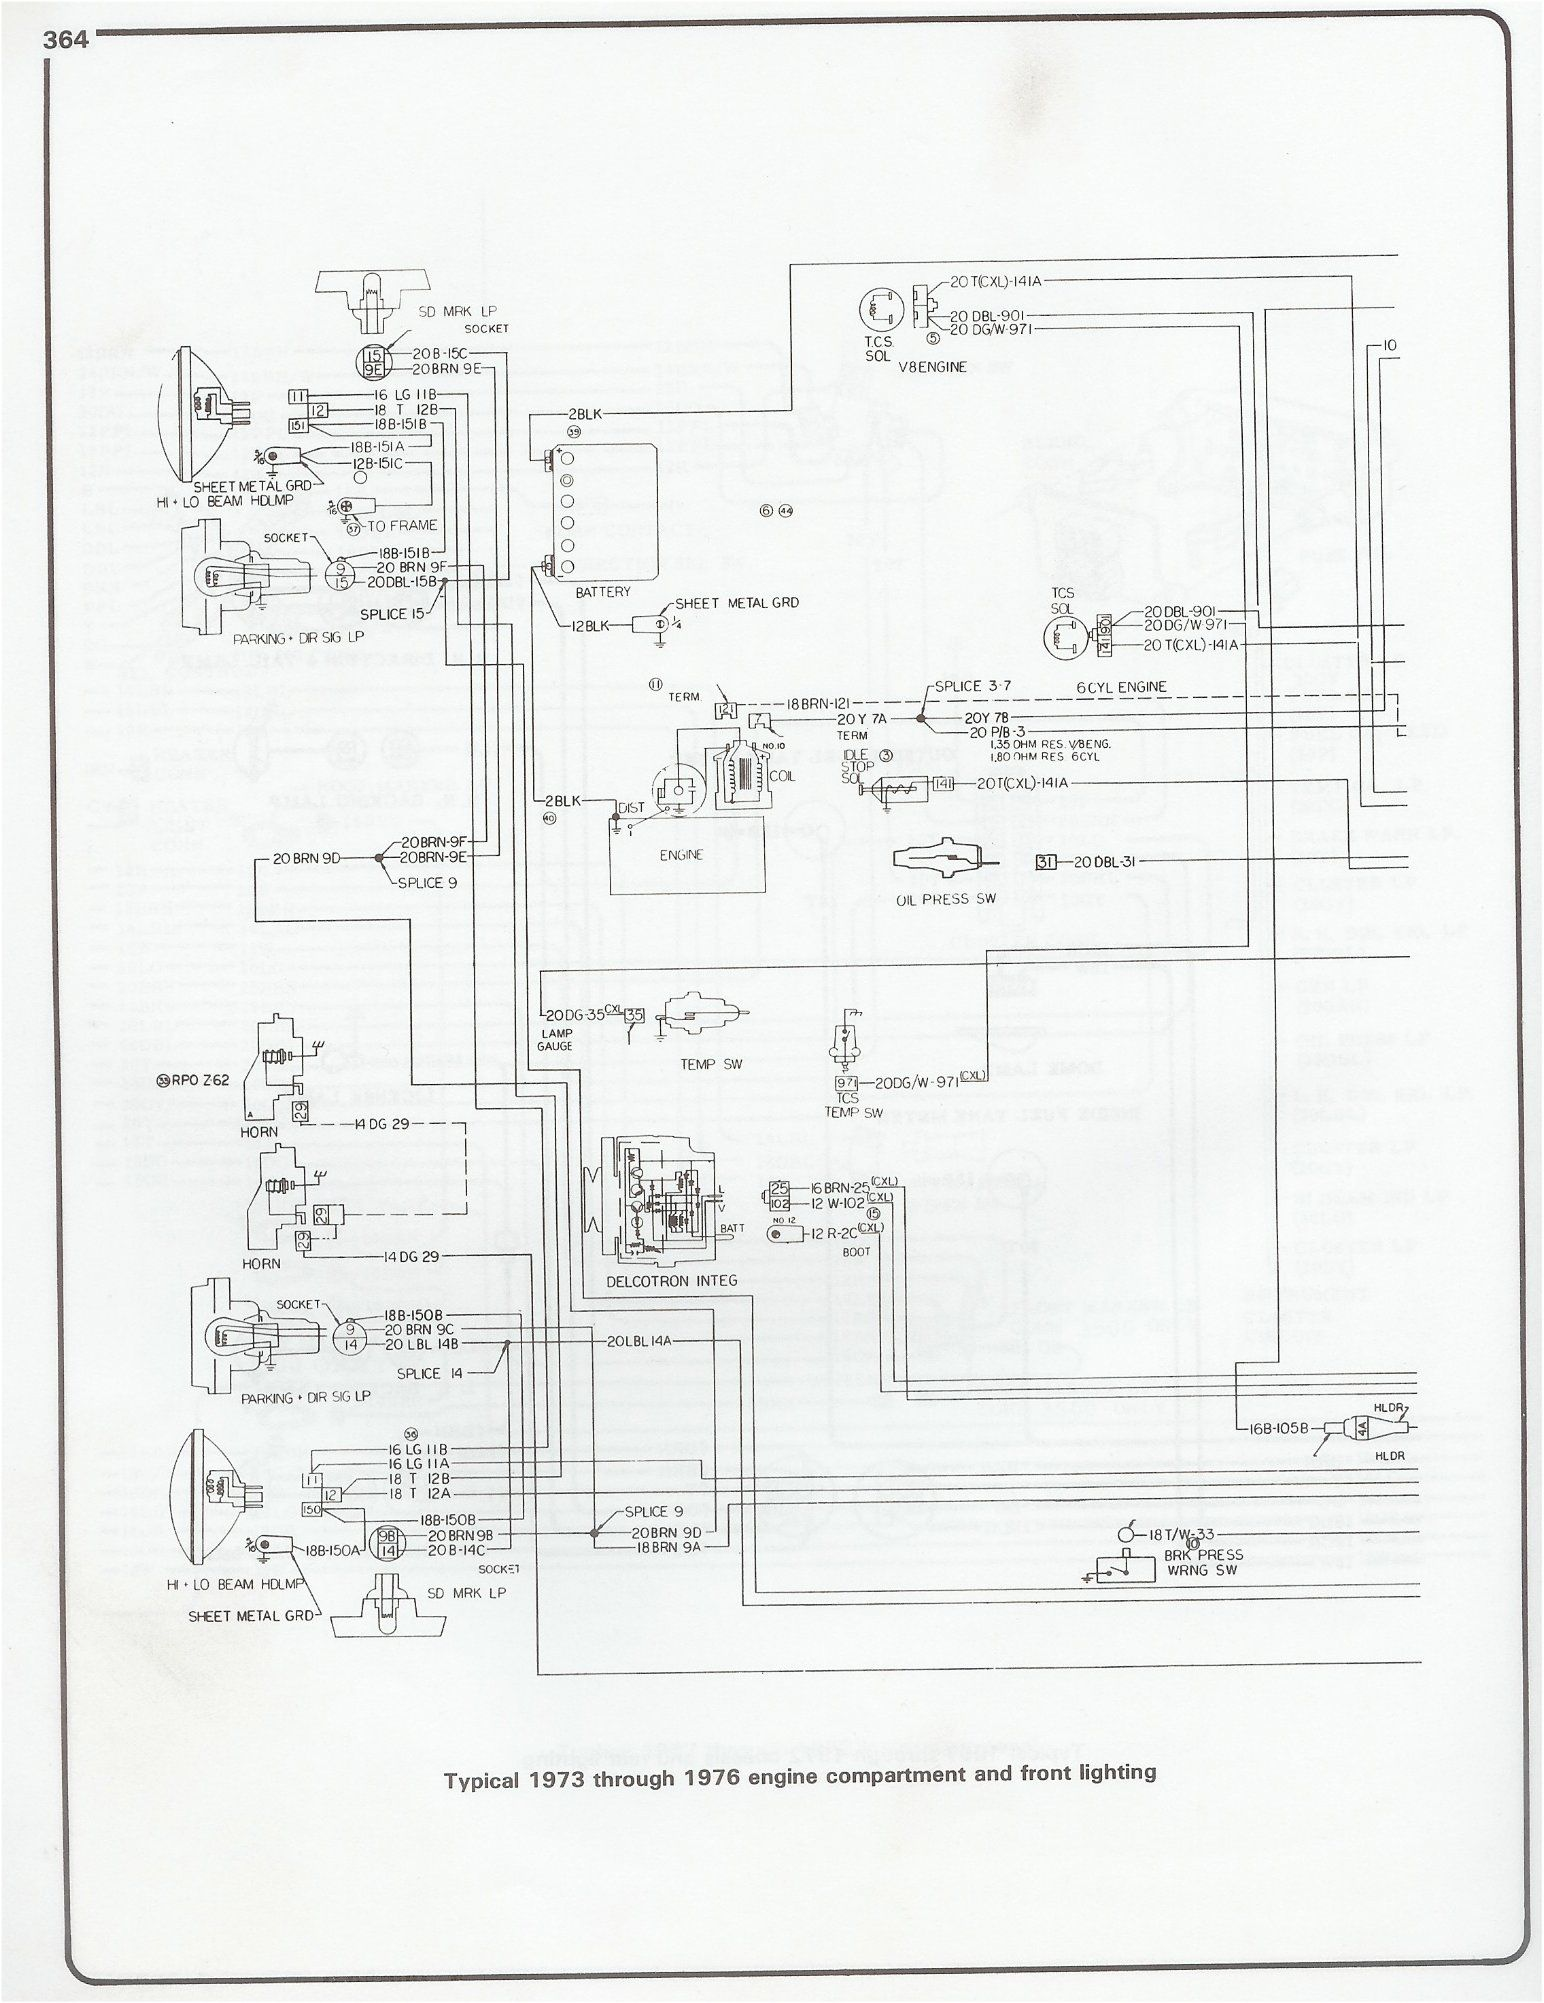 64 chevy pickup wiring diagram